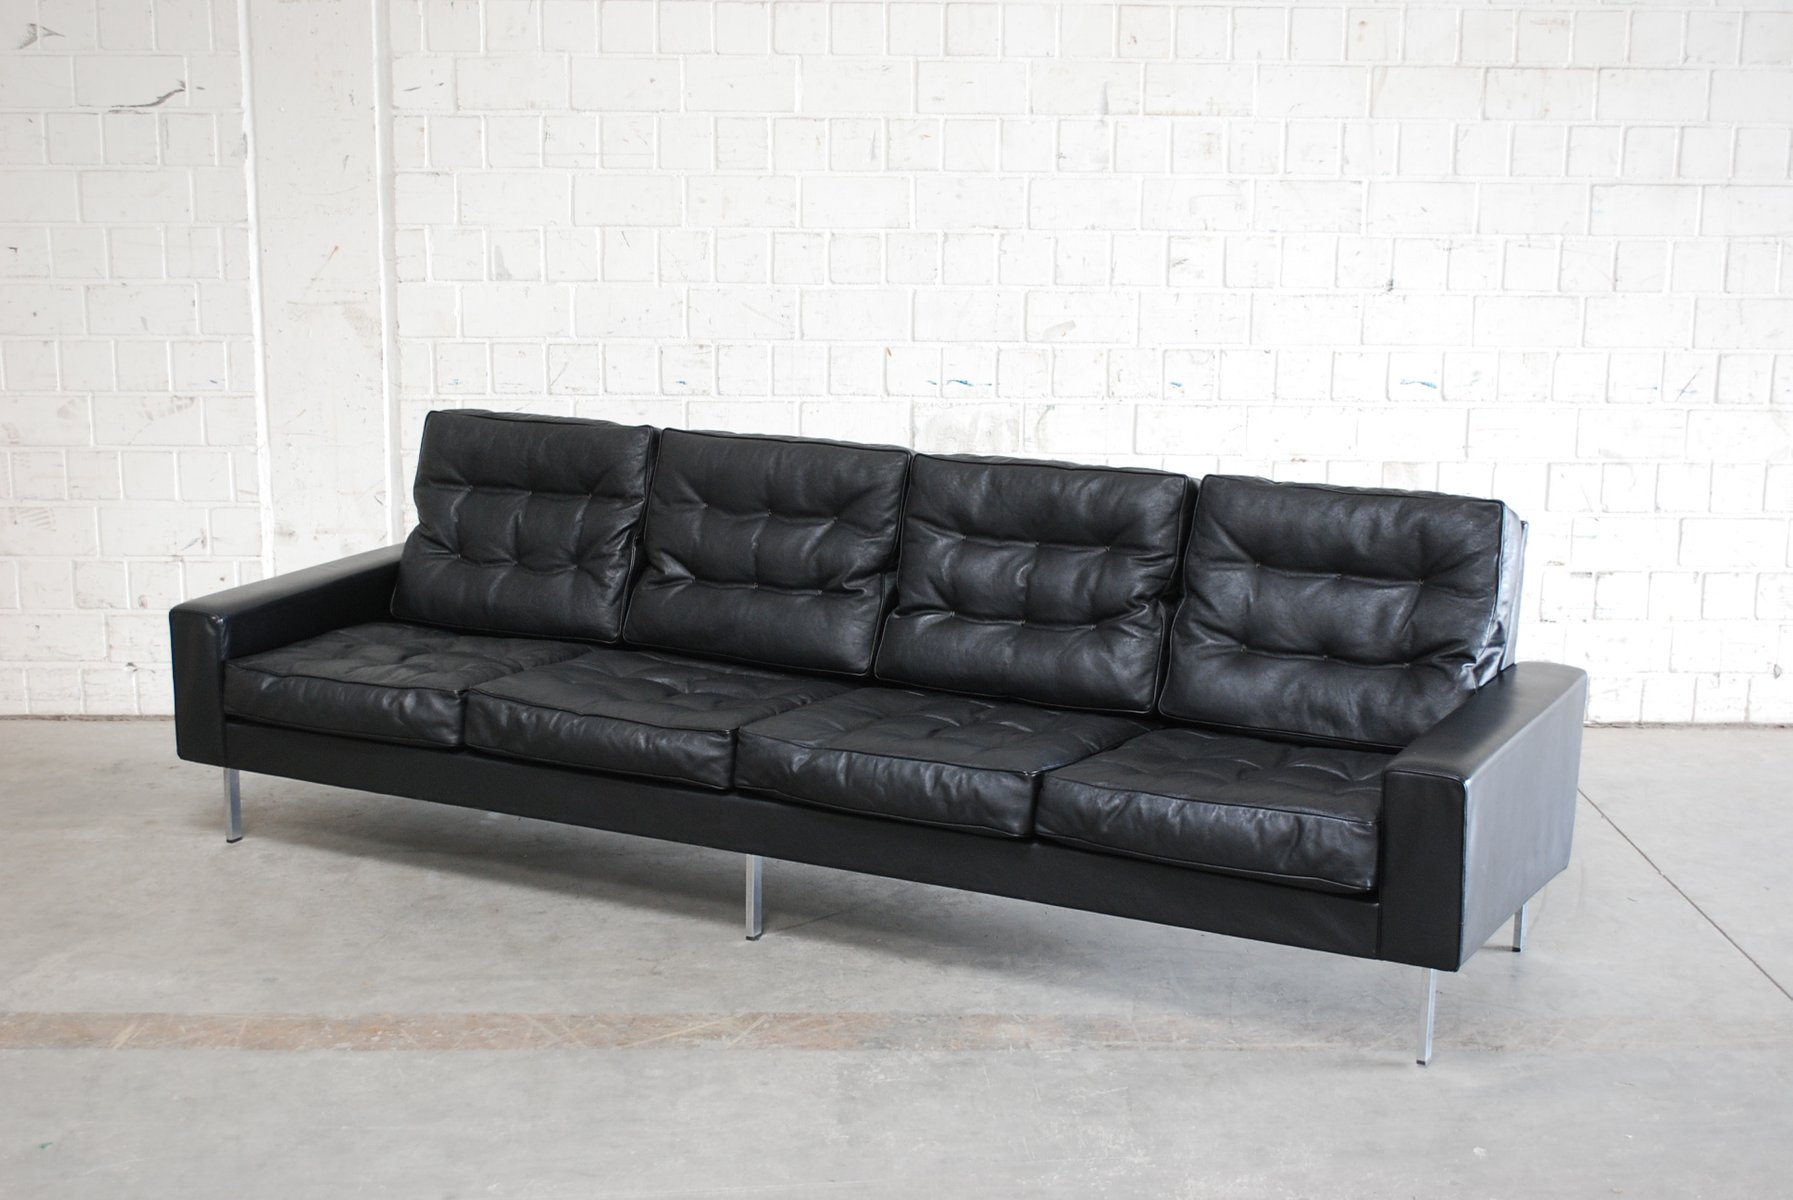 Vintage Black Leather 4 Seater Sofa from De Sede 1967 for sale at